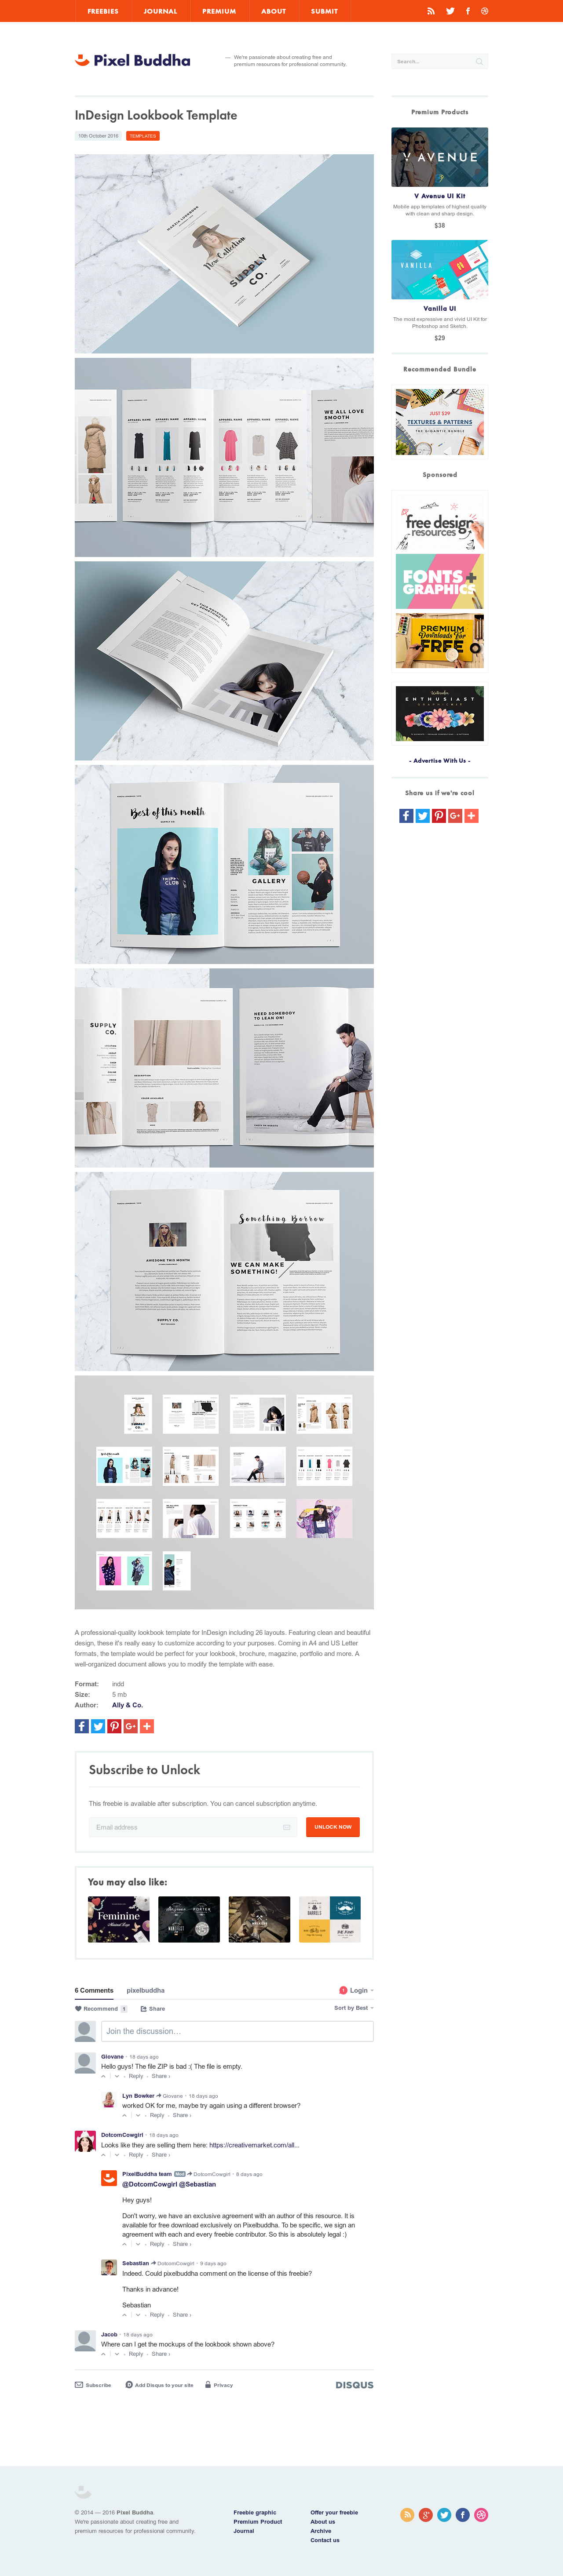 indesign lookbook template download free templates by pixelbuddha